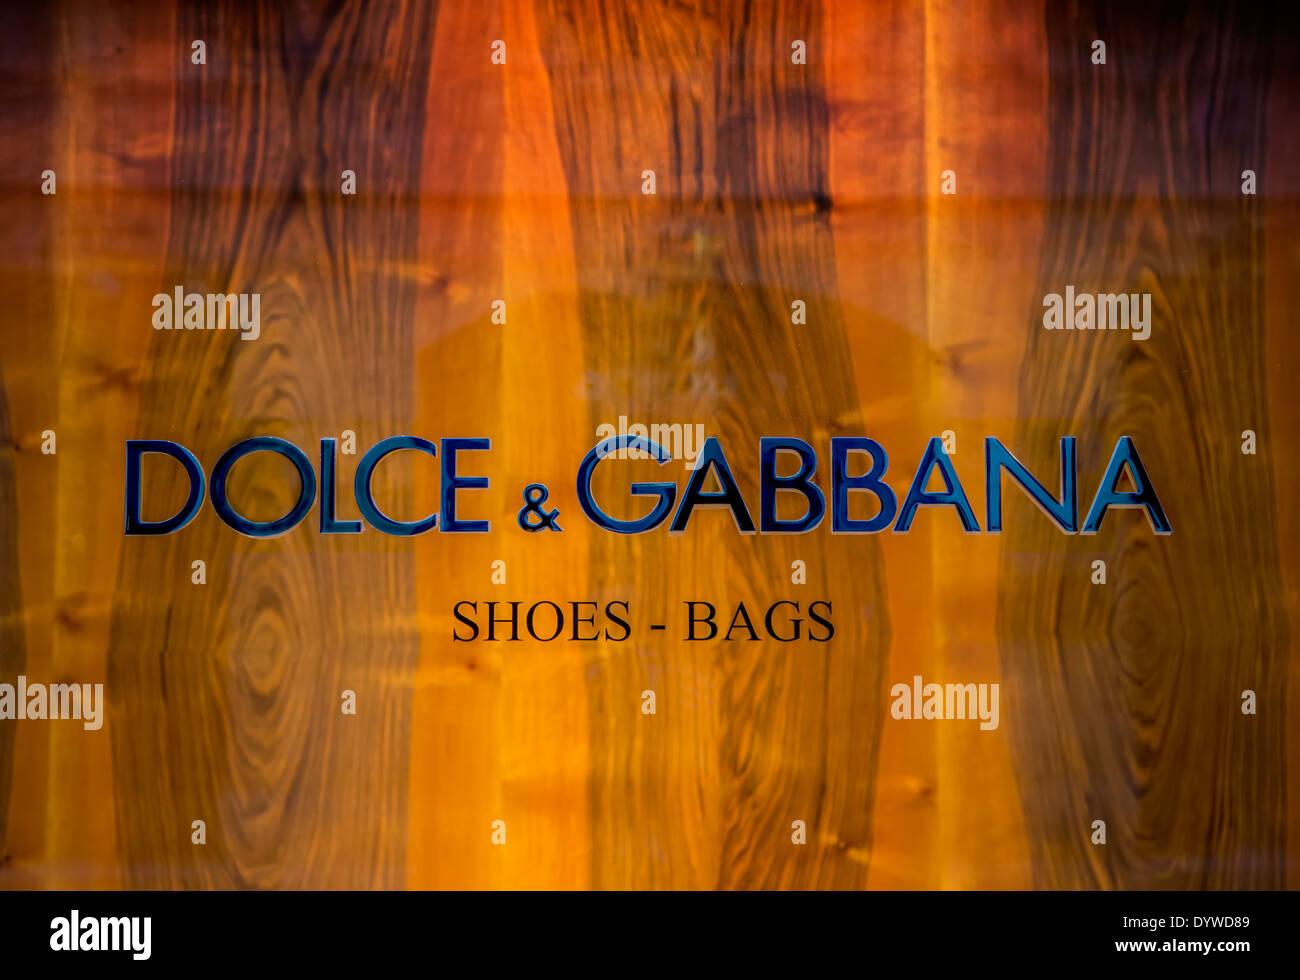 Dolce & Gabbana shop - Stock Image